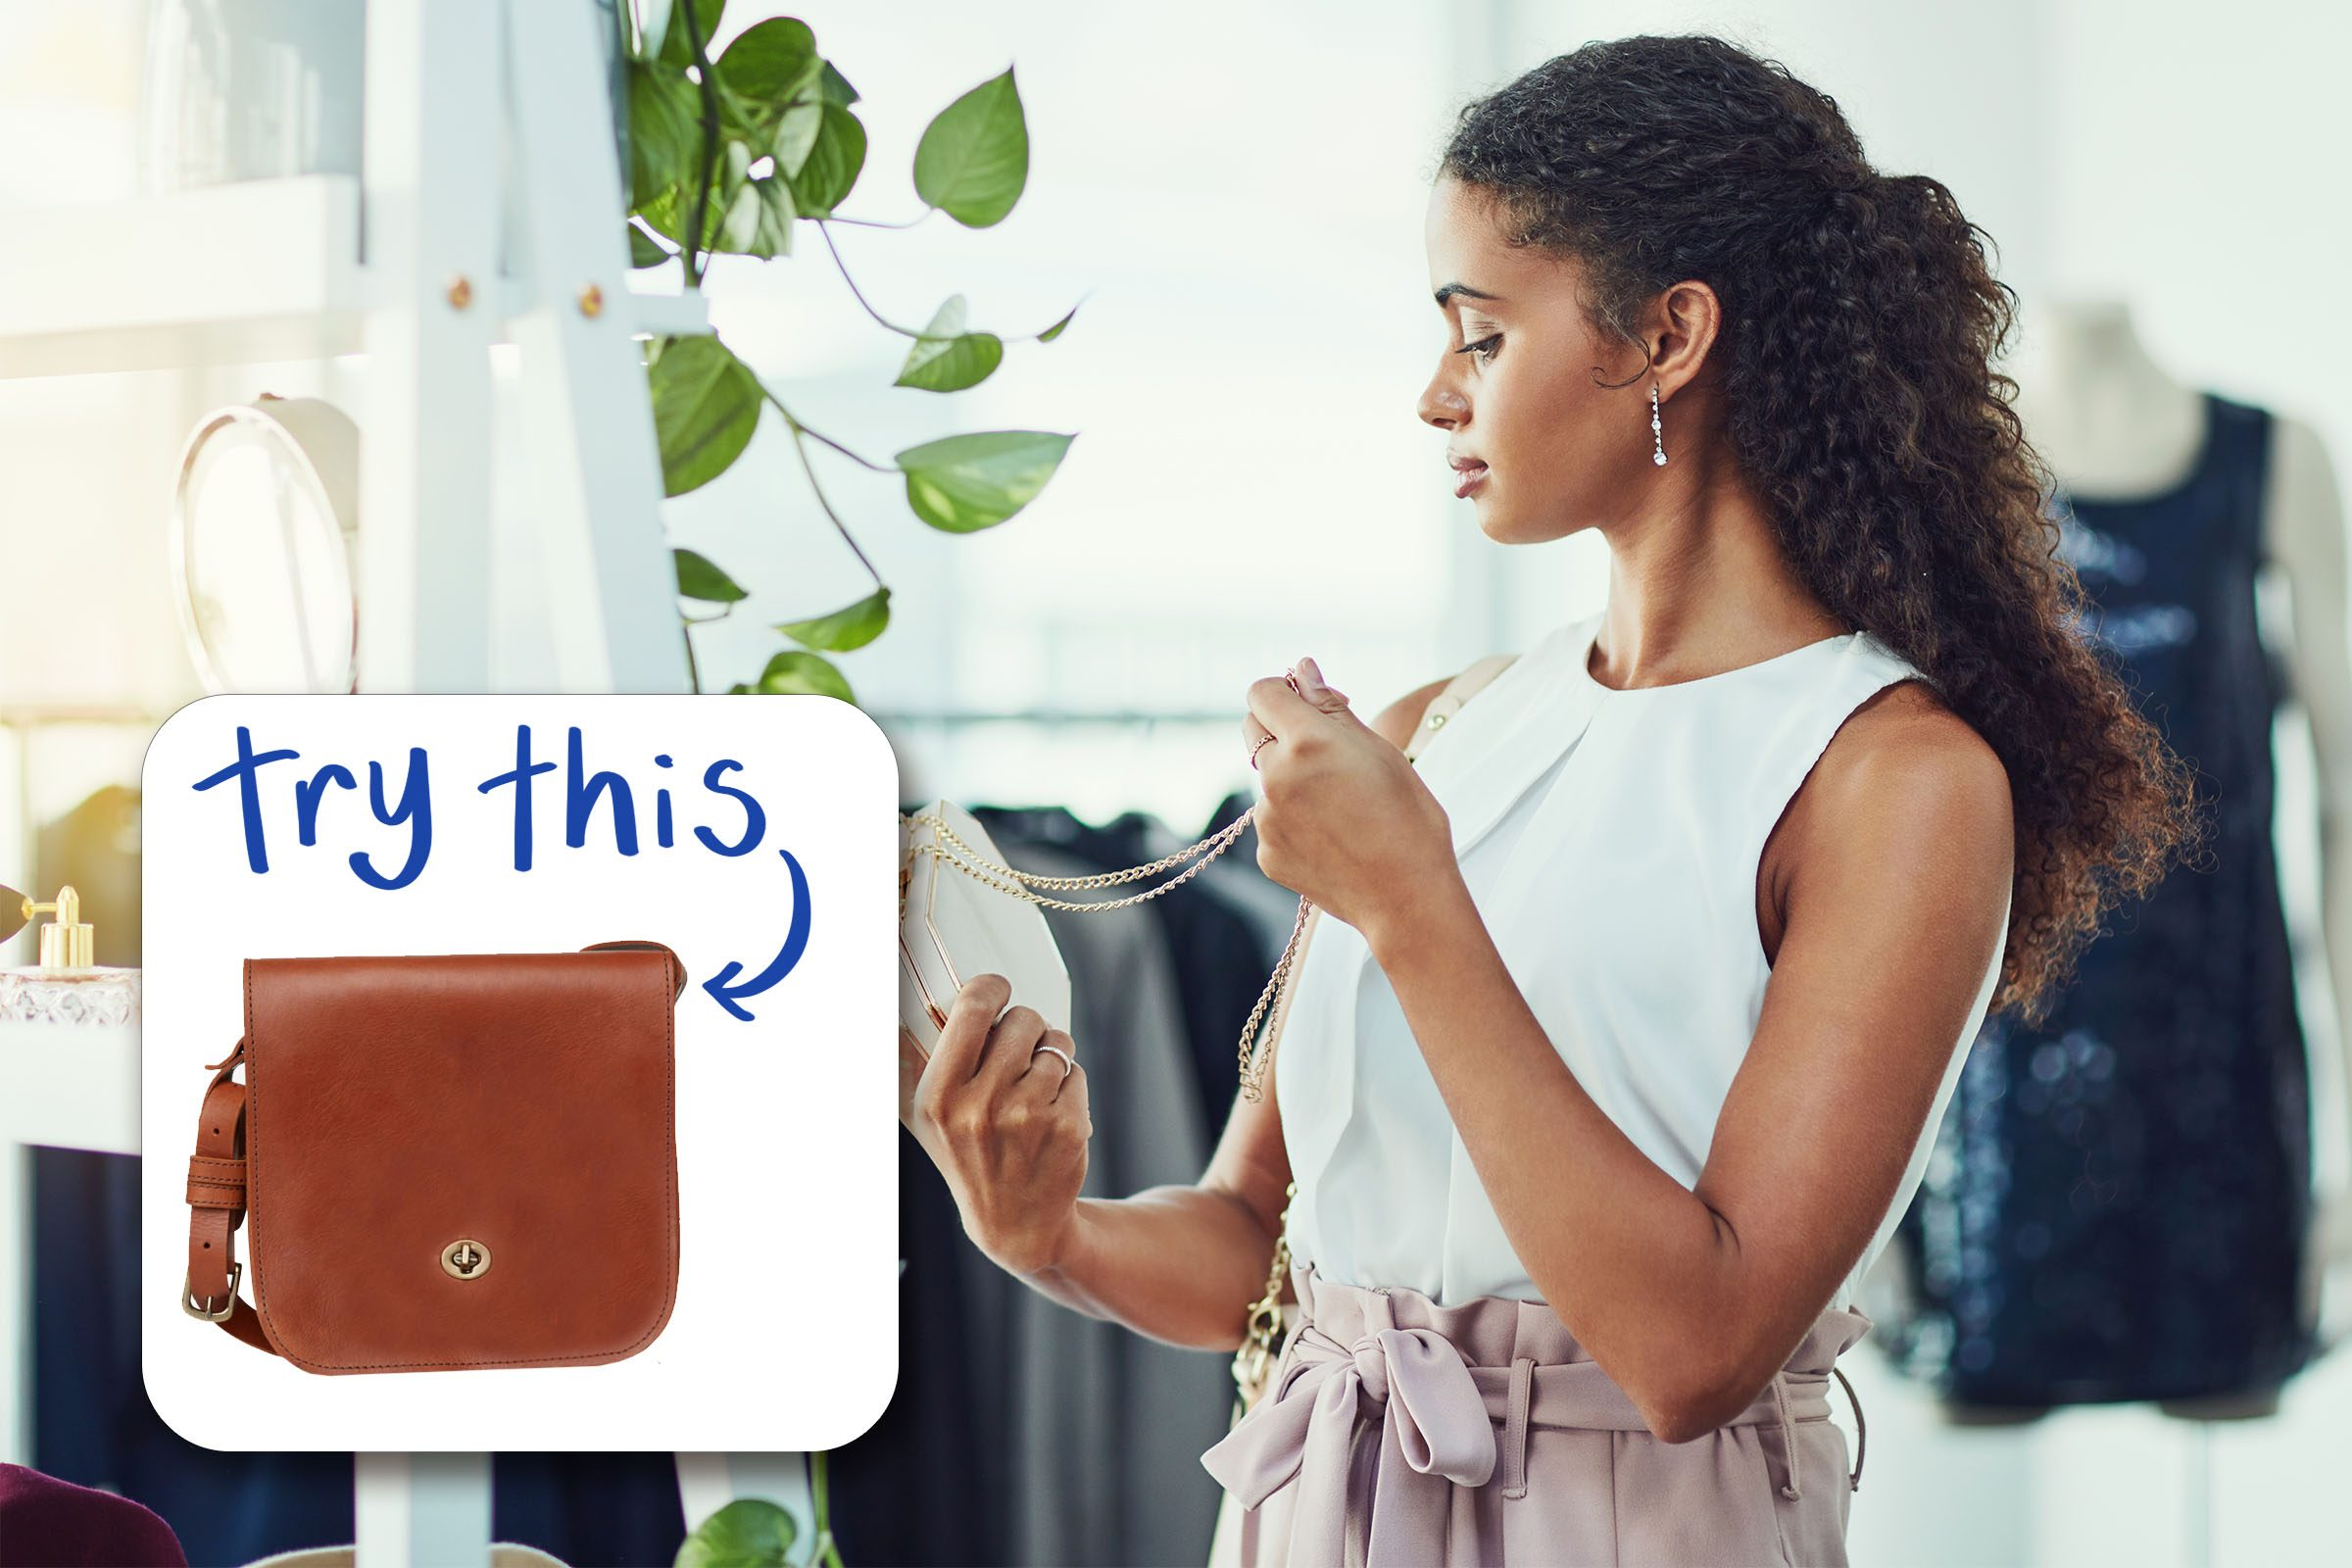 woman looking at jewelry with inset of purse to buy